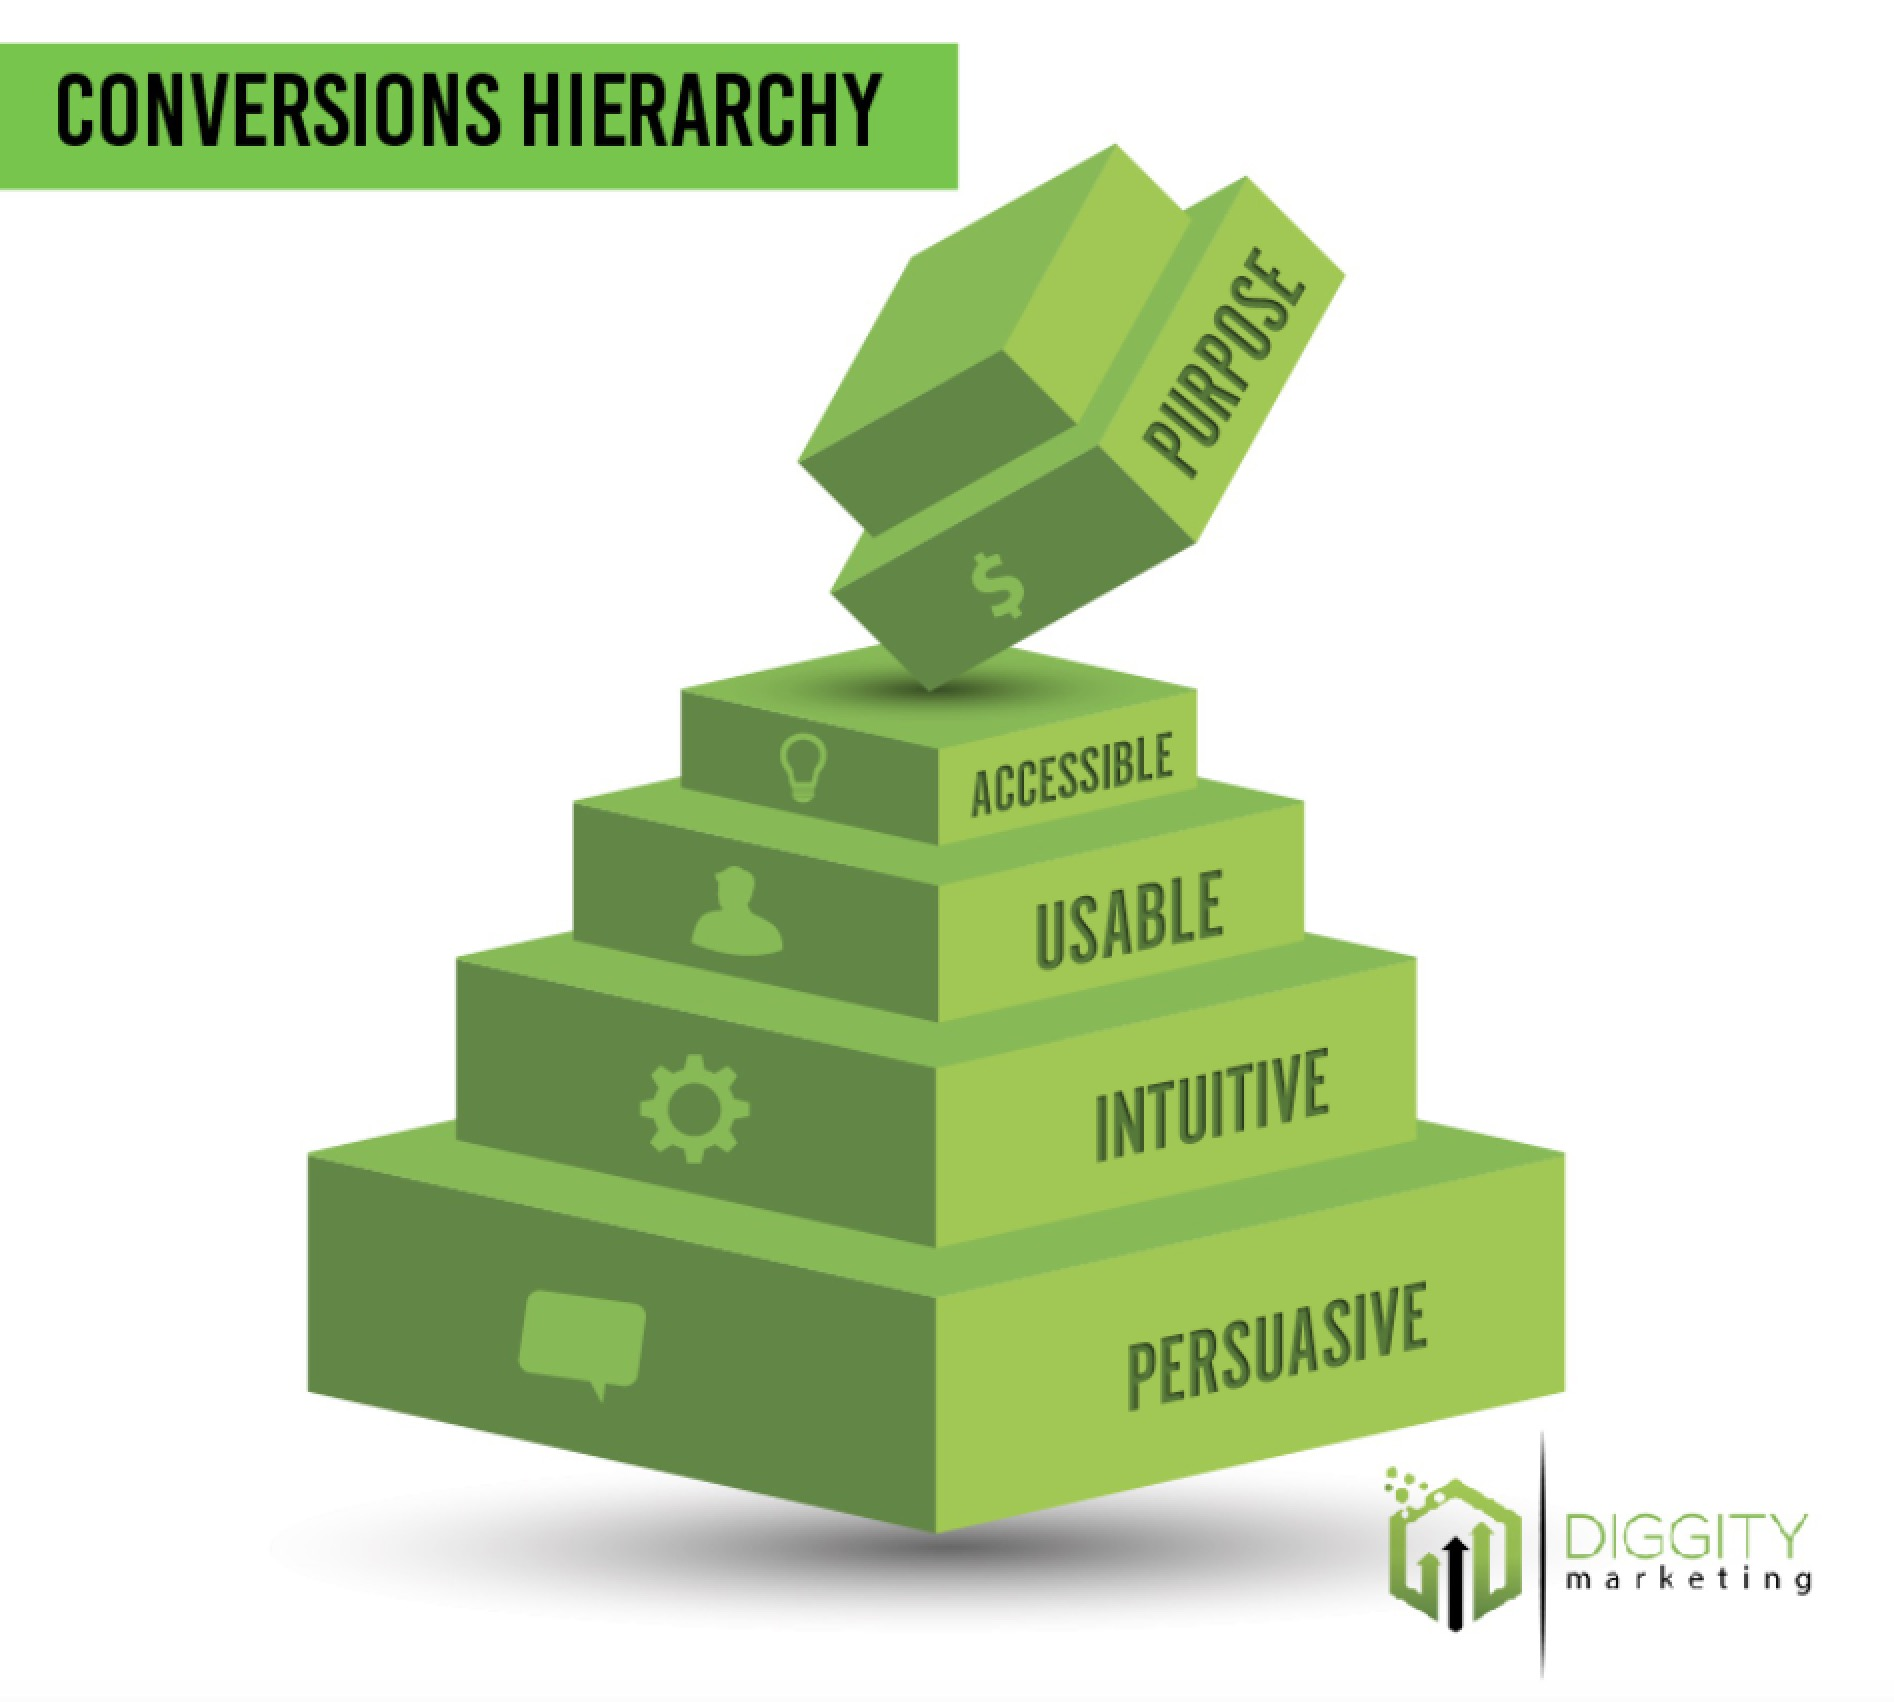 Conversionns Hierarchy Pyramid